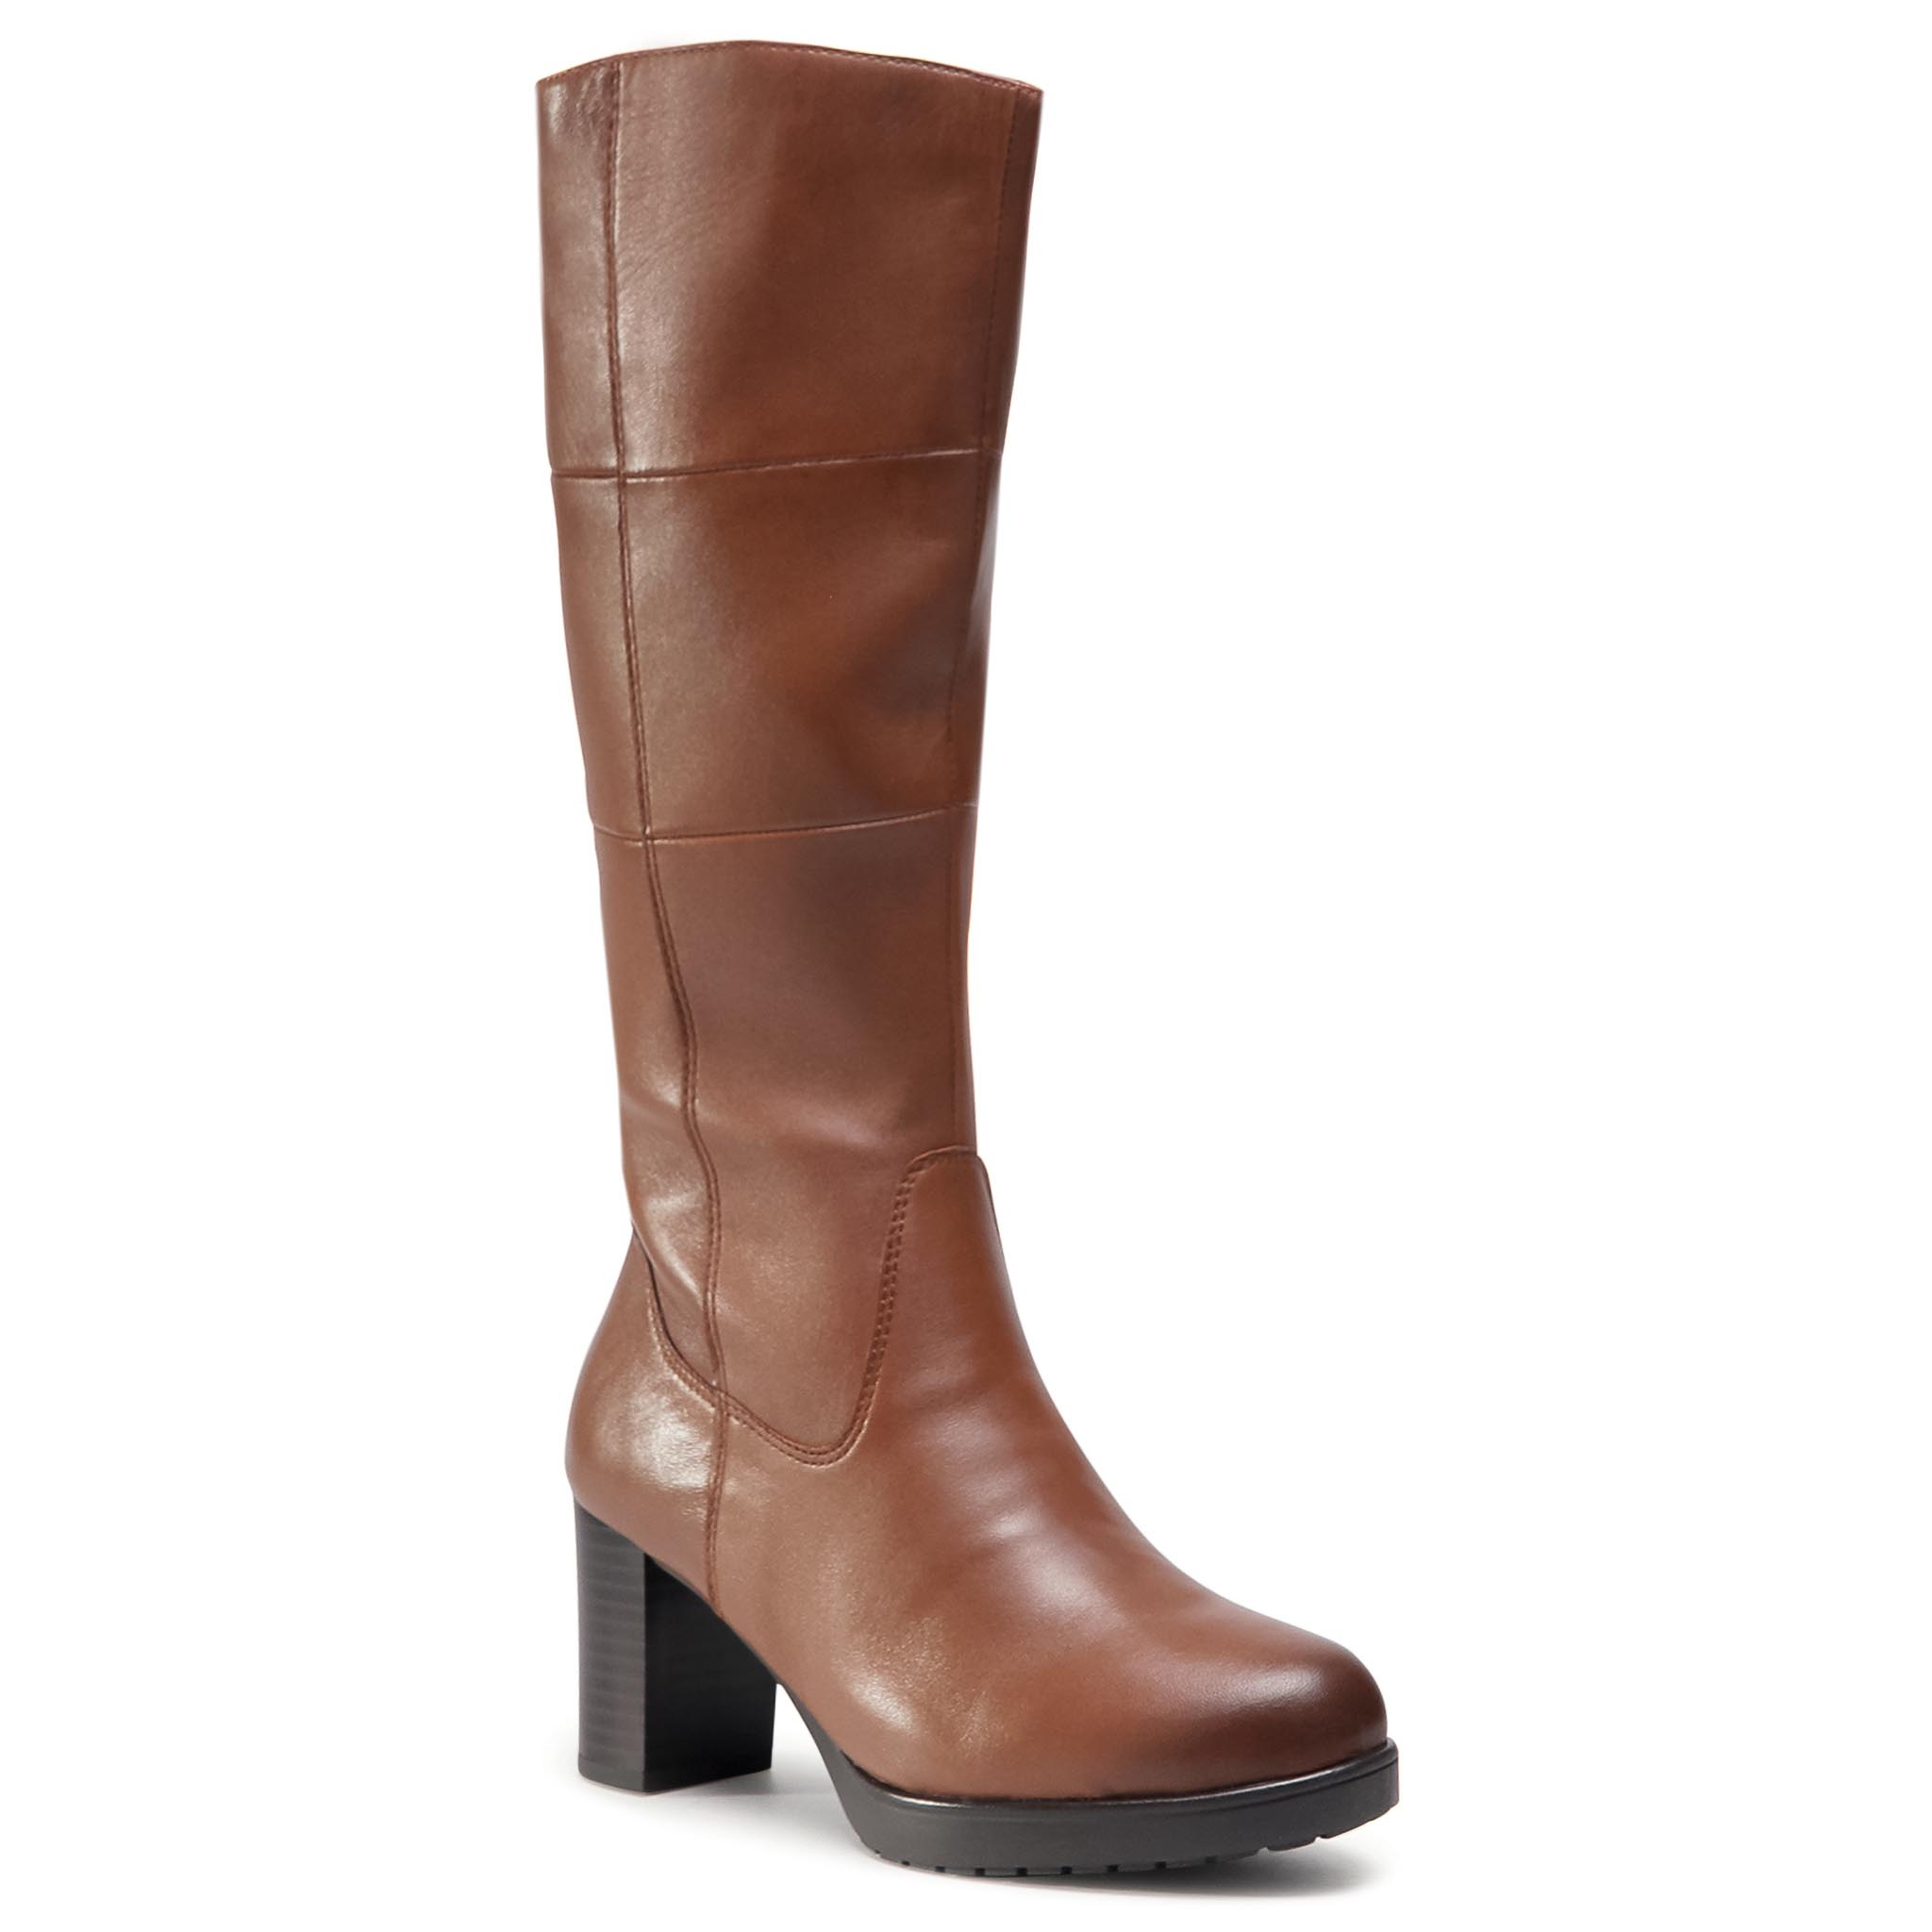 Image of Stiefel CAPRICE - 9-25610-25 Cognac Soft Na 335